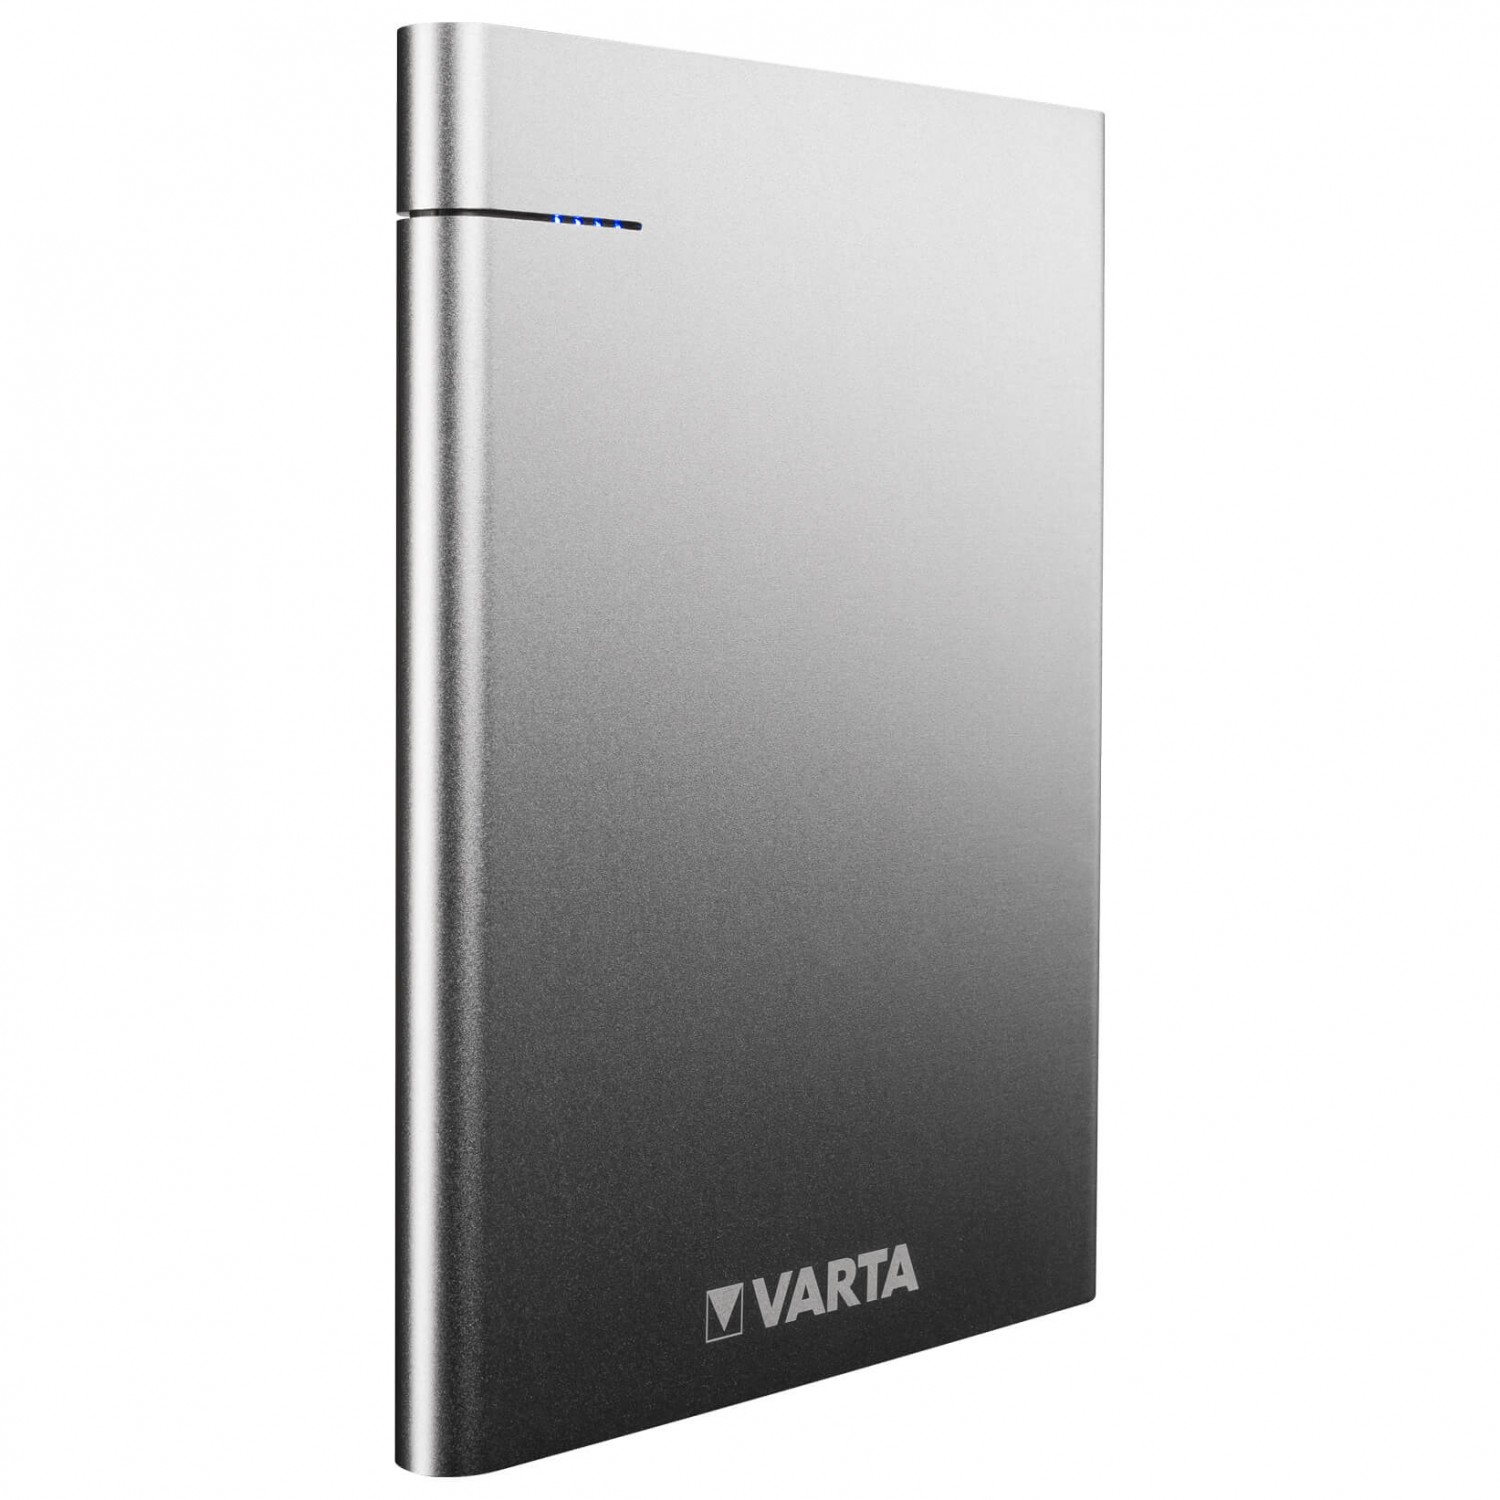 varta portable slim power bank micro usb kabel buy online. Black Bedroom Furniture Sets. Home Design Ideas